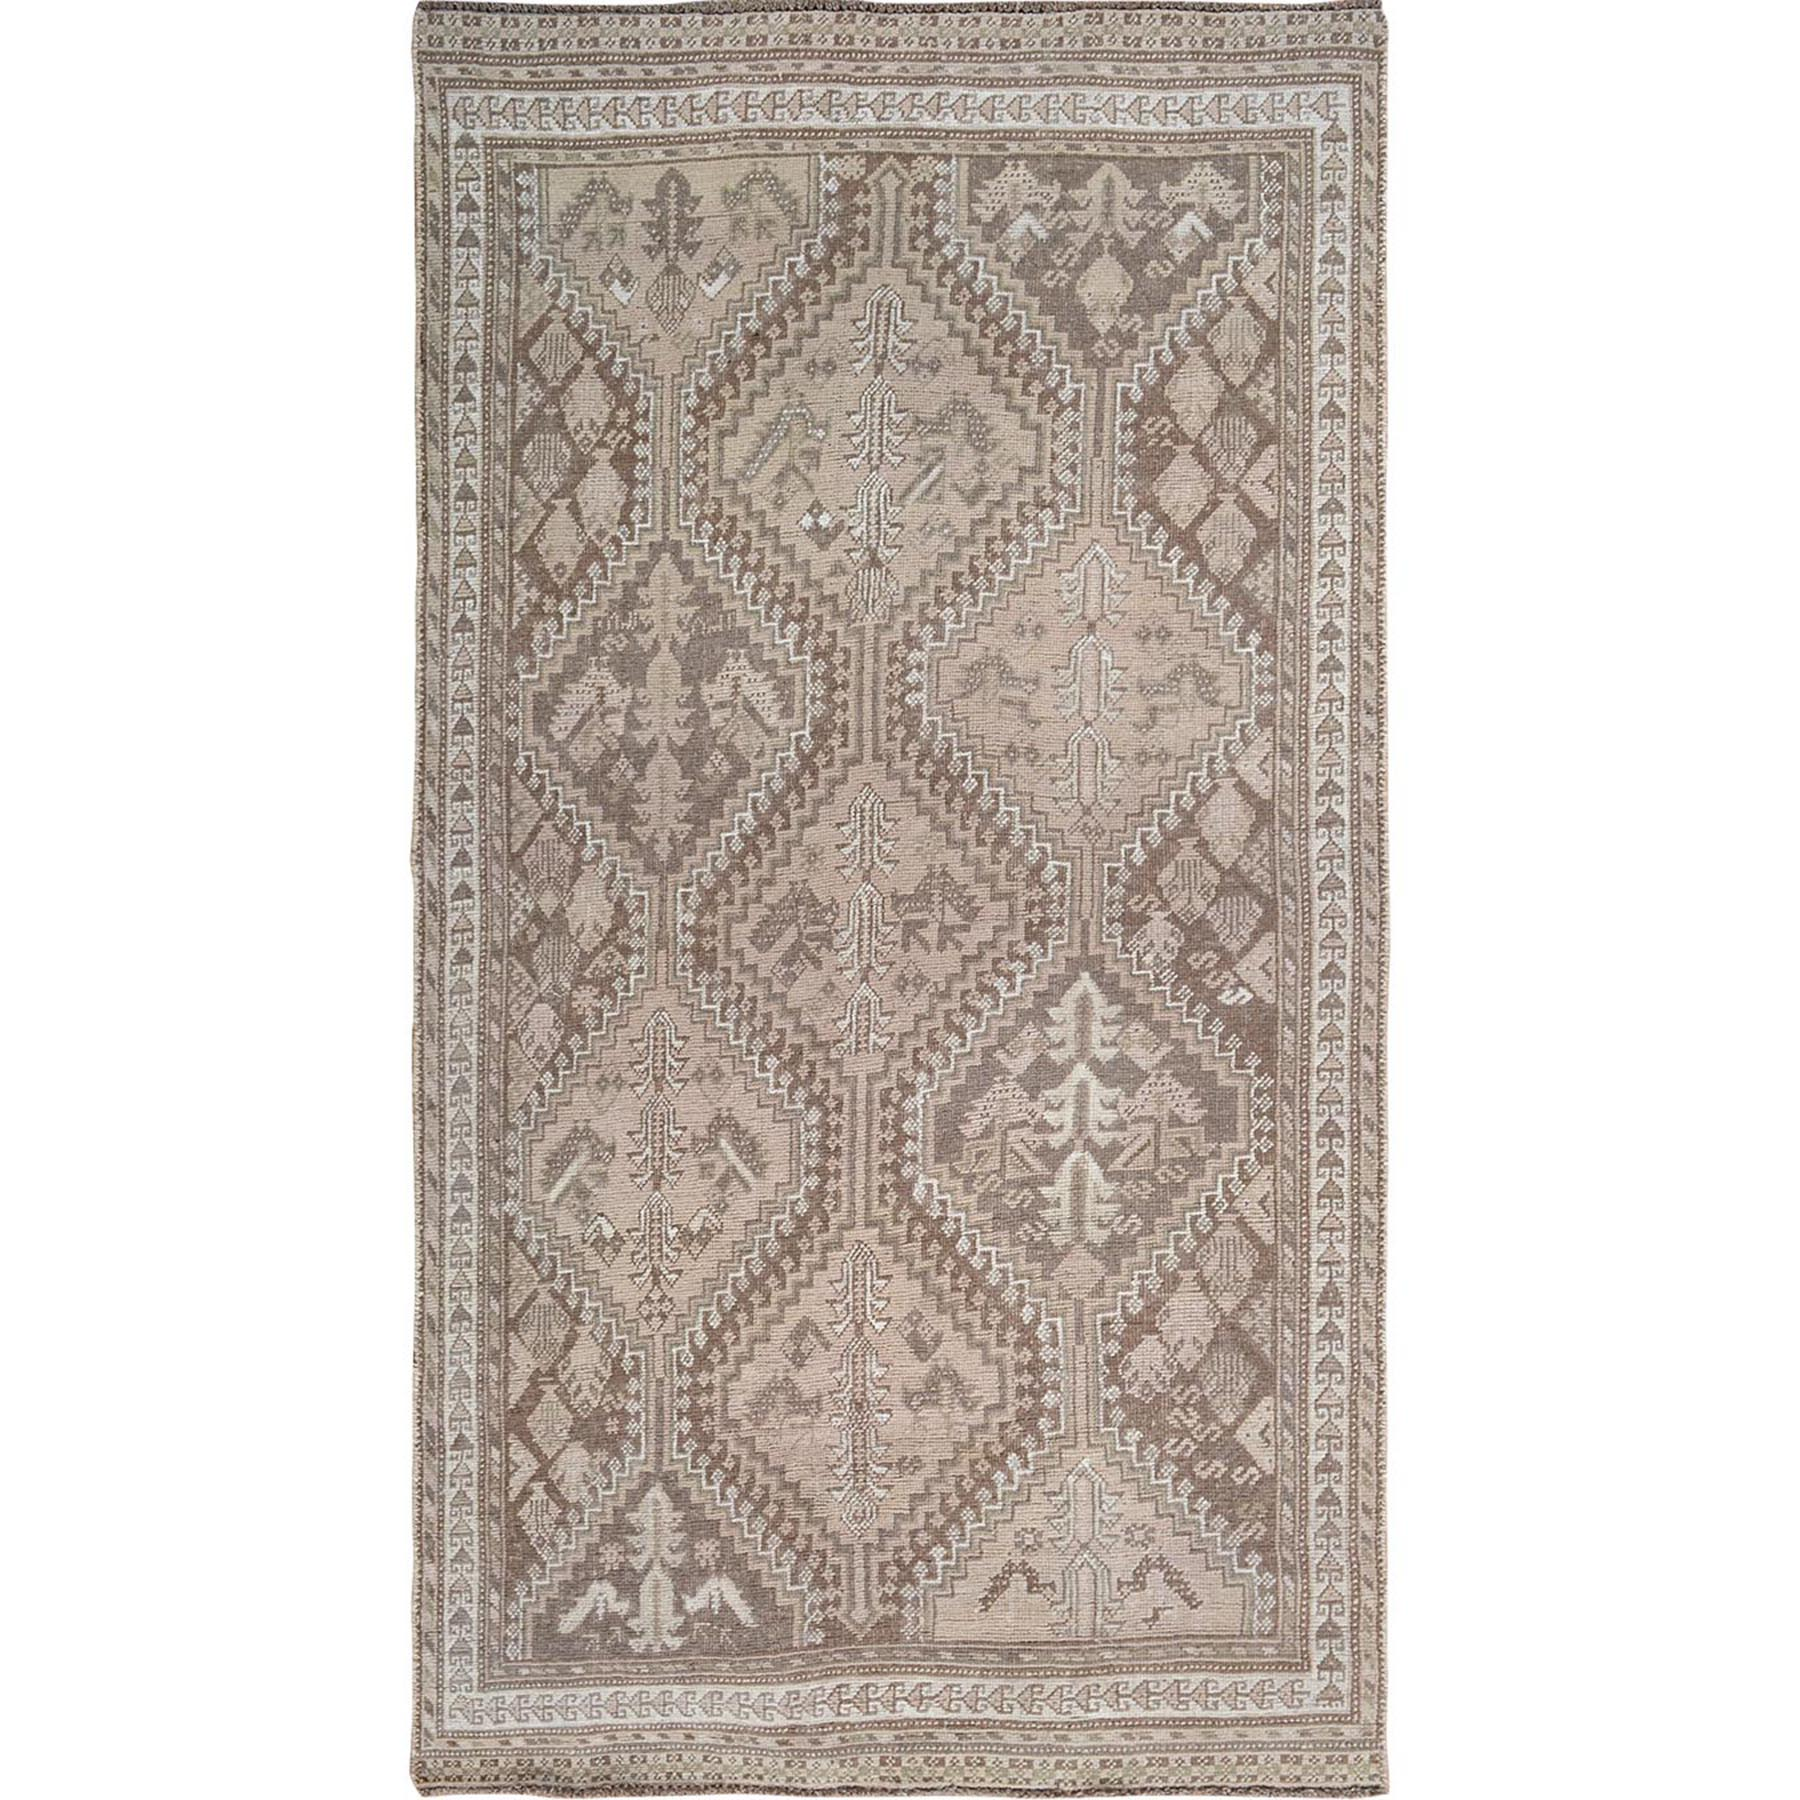 """4'9""""X8'6"""" Earth Tone Colors Vintage And Worn Down Persian Qashqai Pure Wool Hand Knotted Oriental Rug moae7bbe"""